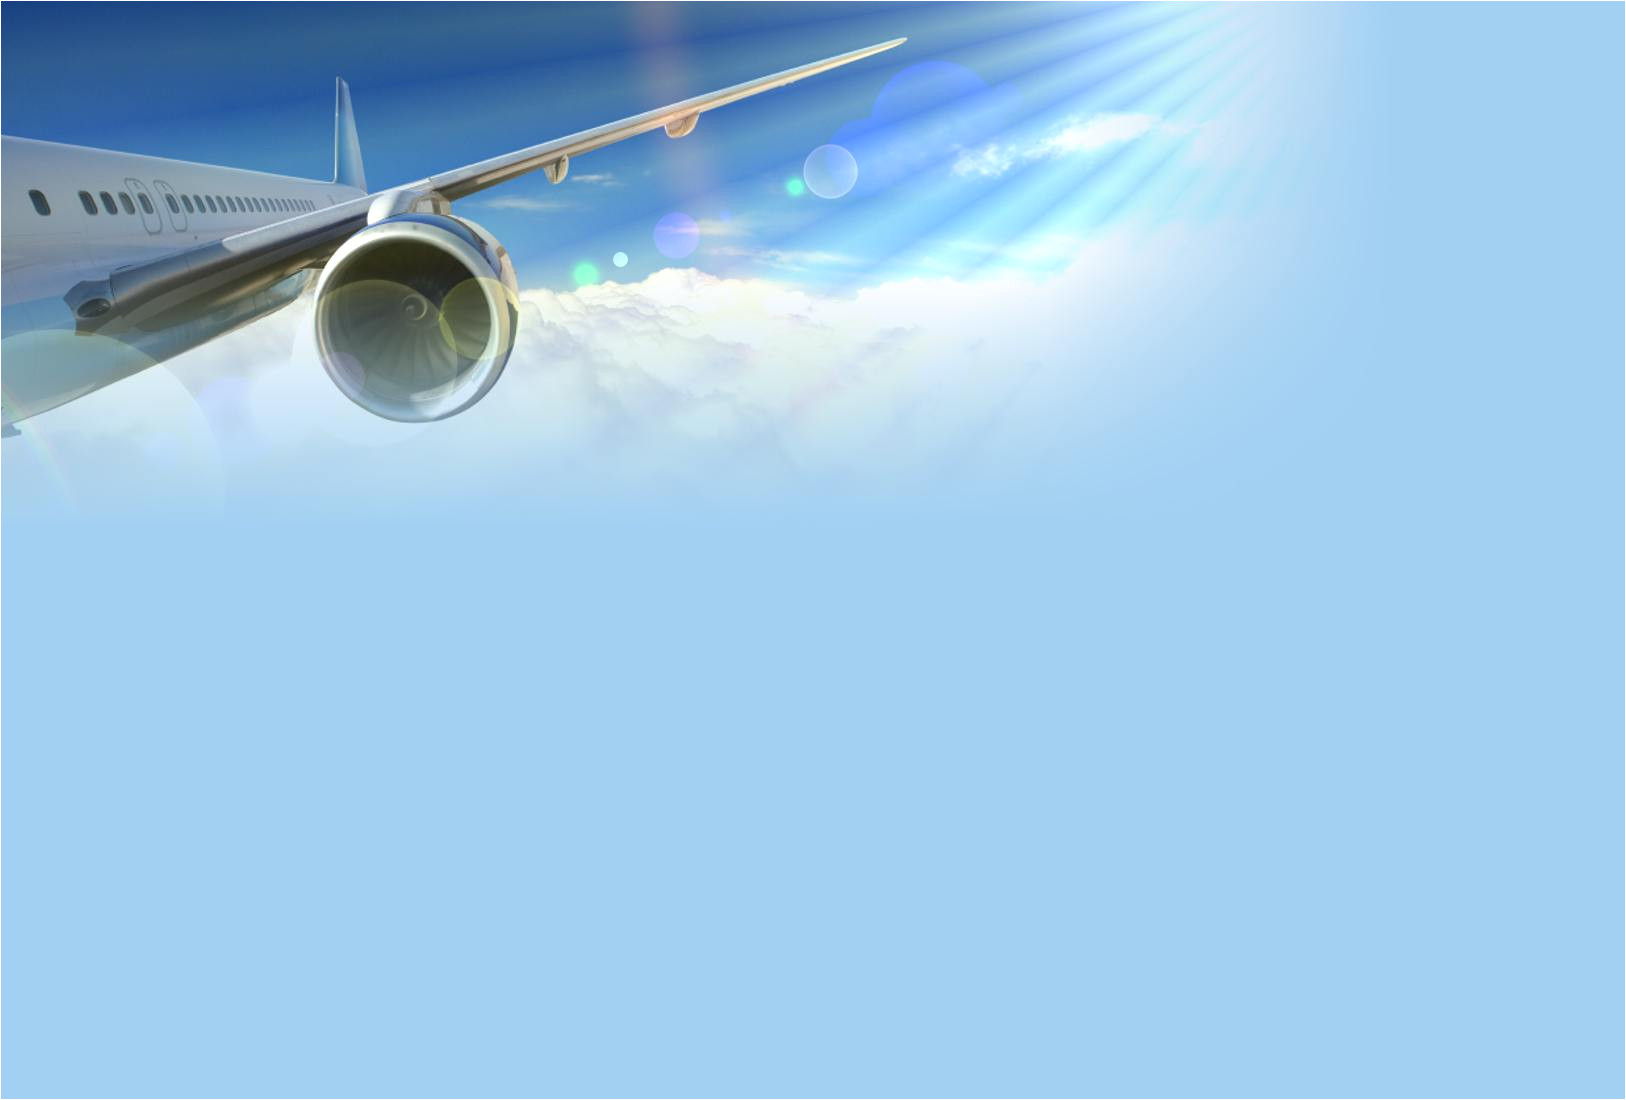 Airplane Ppt Template Free Air Travel Airplane Backgrounds for Powerpoint Car